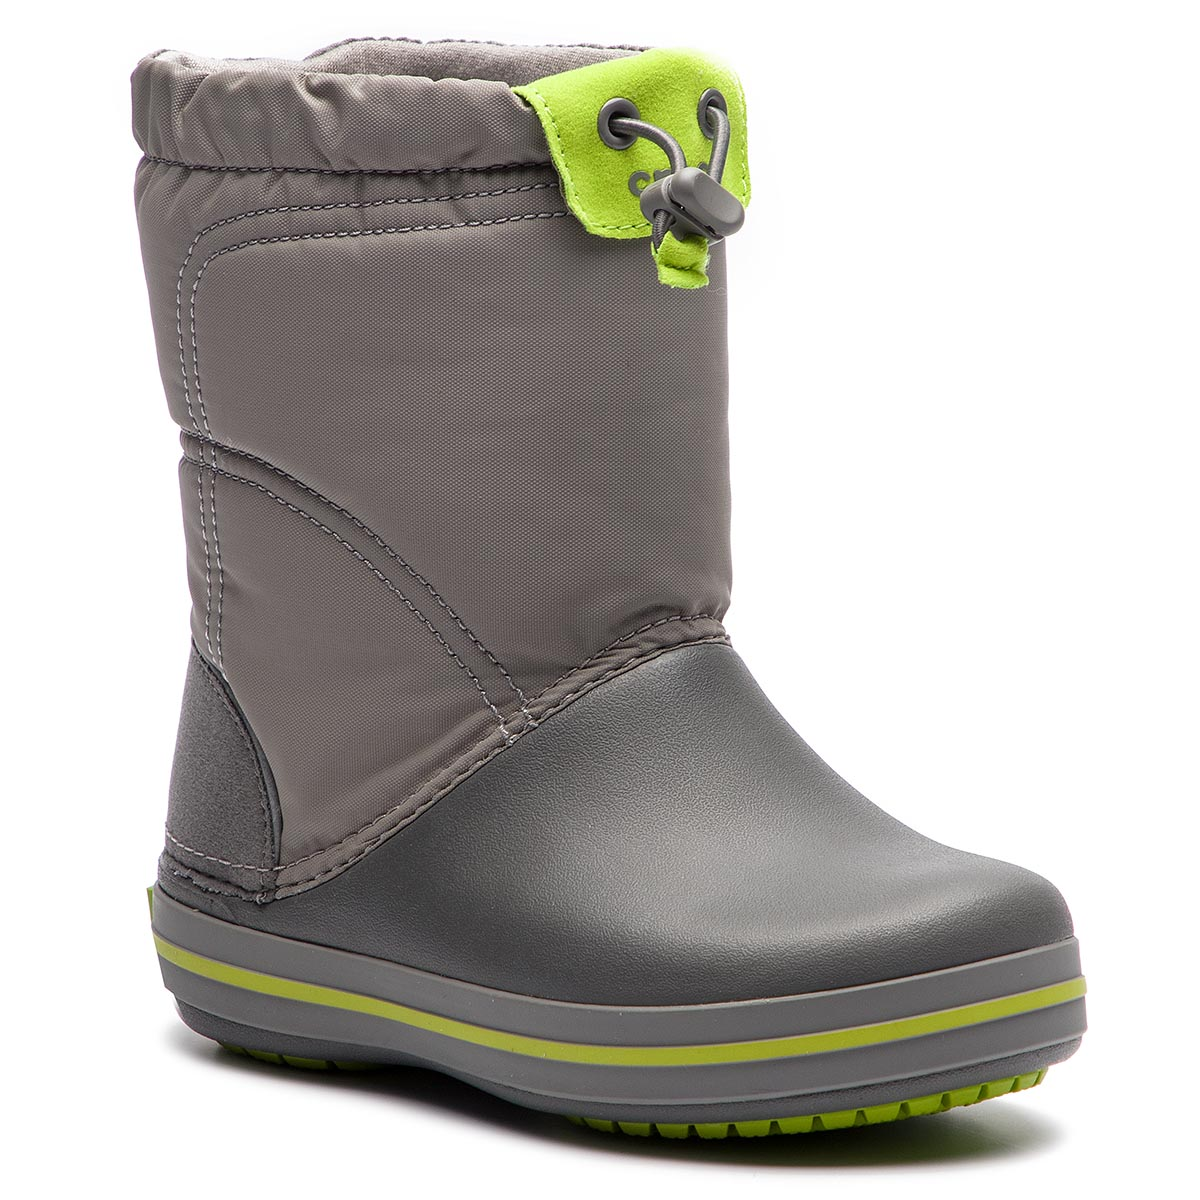 da7275417386d Sněhule CROCS - Crocband Lodgepoiont Boot K 203509 Smoke/Graphite